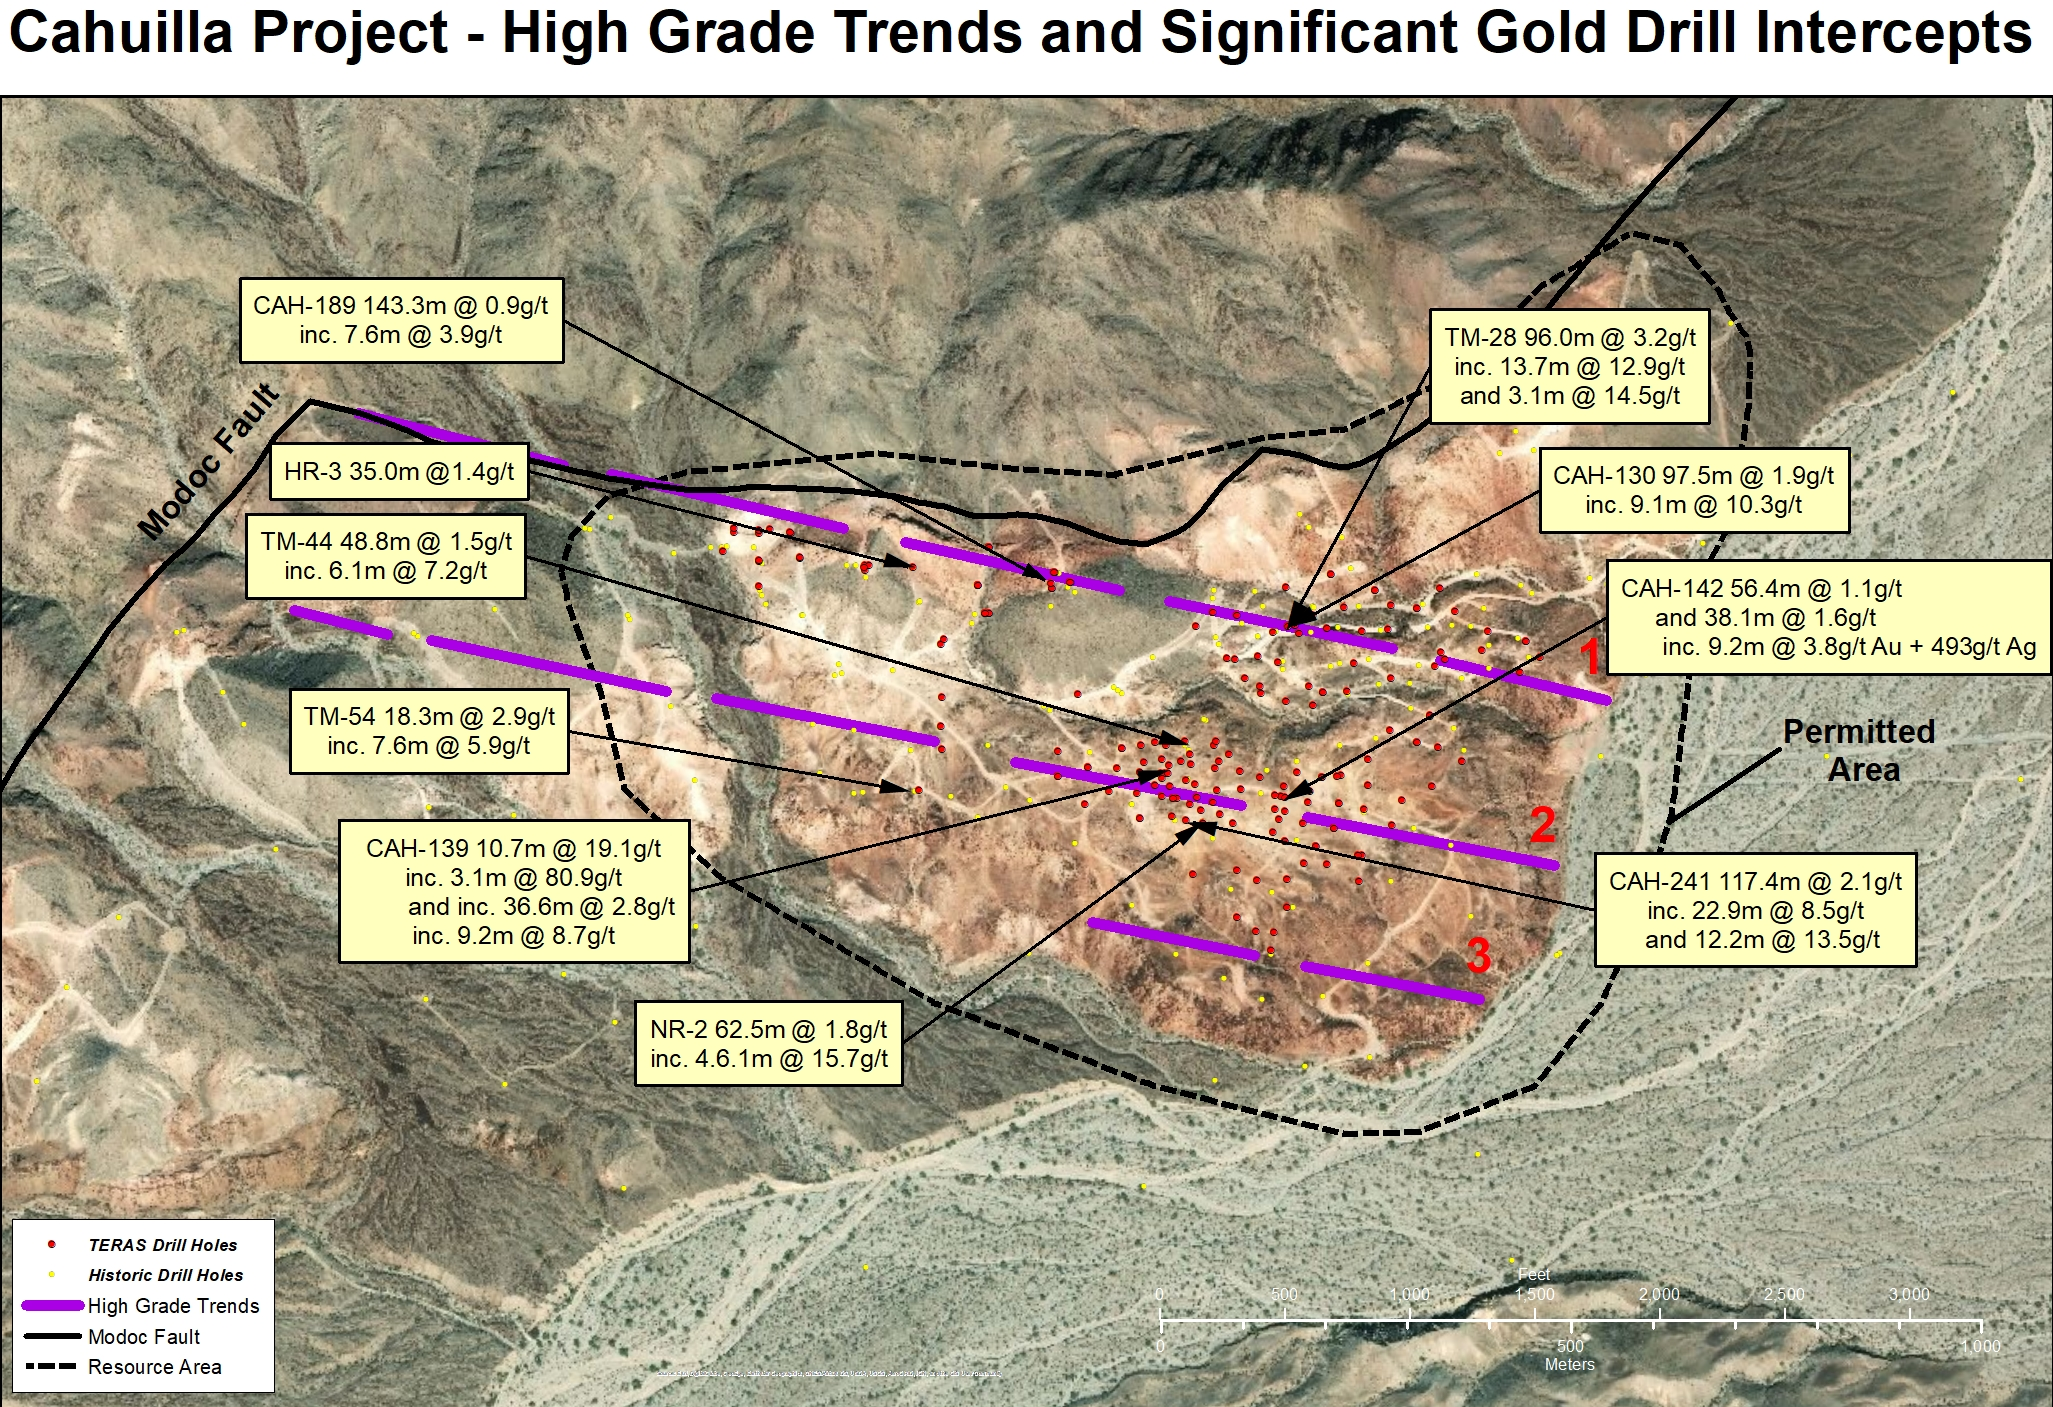 cahuilla-project-teras-resources-gold-silver-mining-tsxv-tra-california-nevada-montana